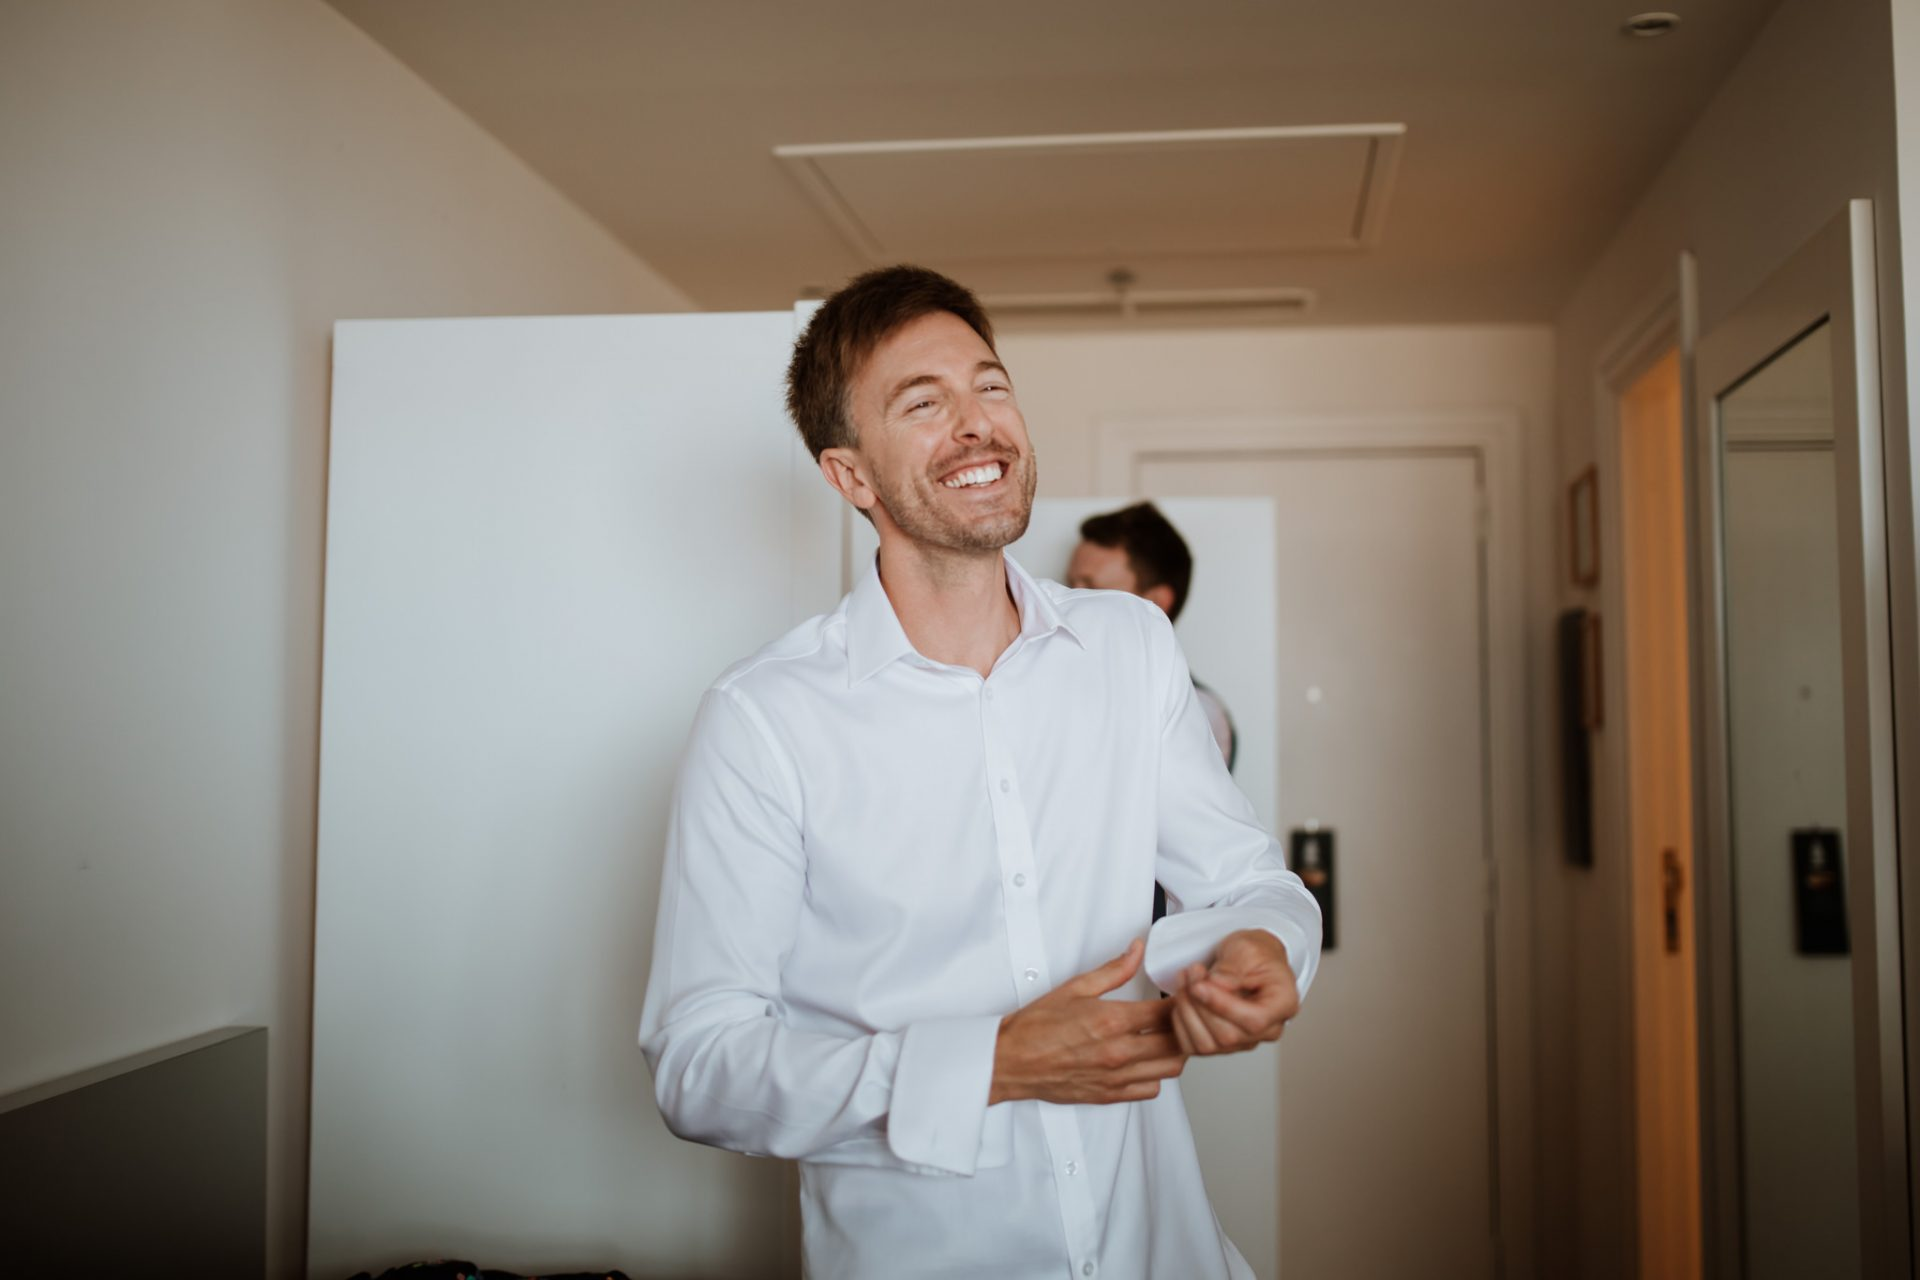 groom laughing as he puts on his shirt